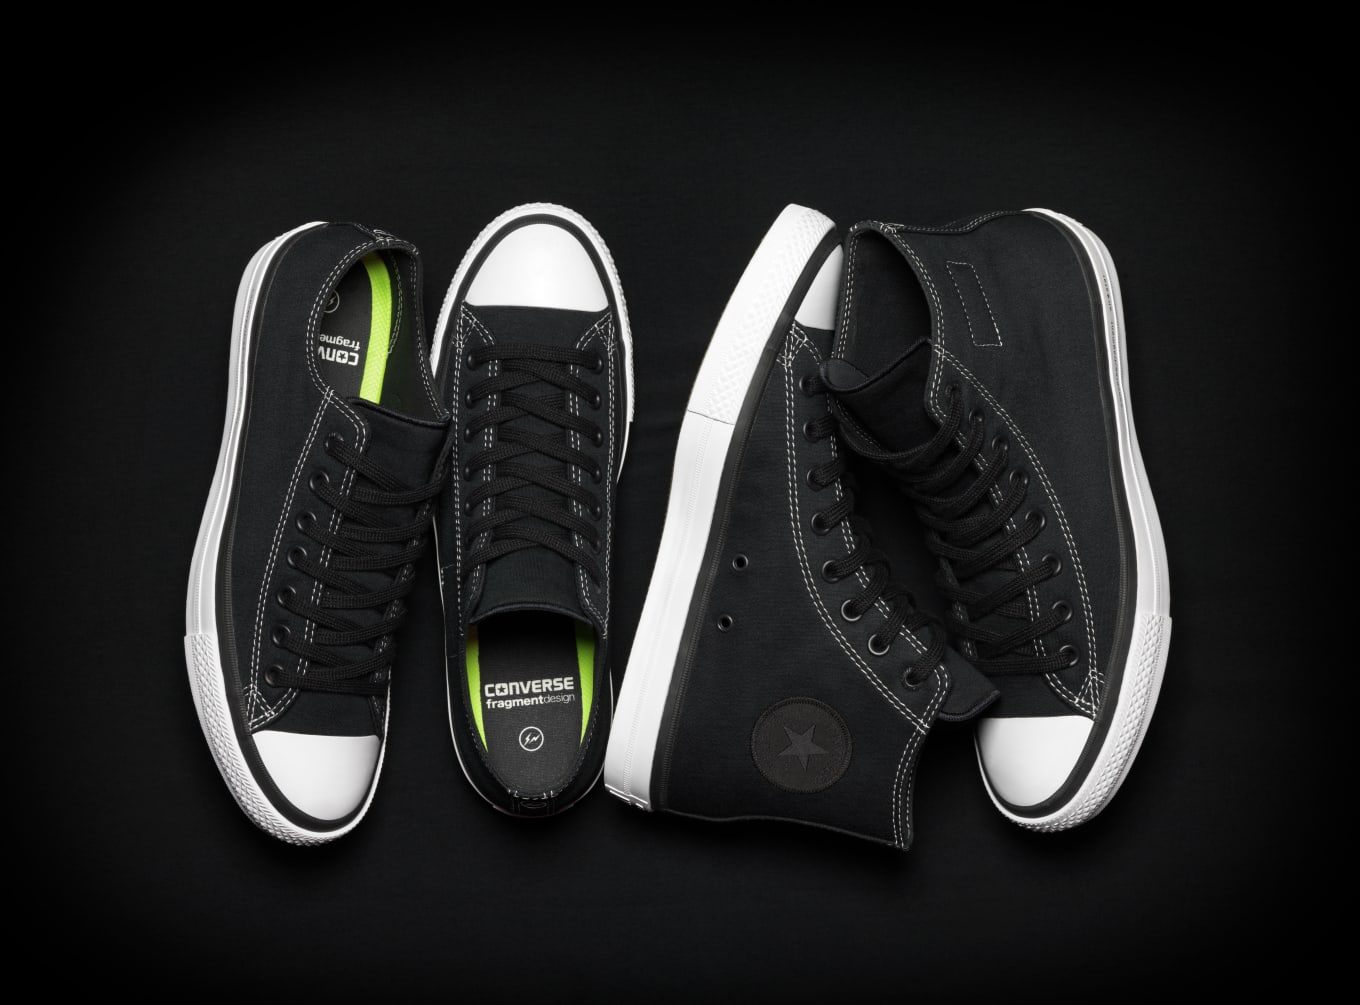 6b280e6a2b64 Fragment Design x Converse Chuck Taylor All Star SE Collection ...